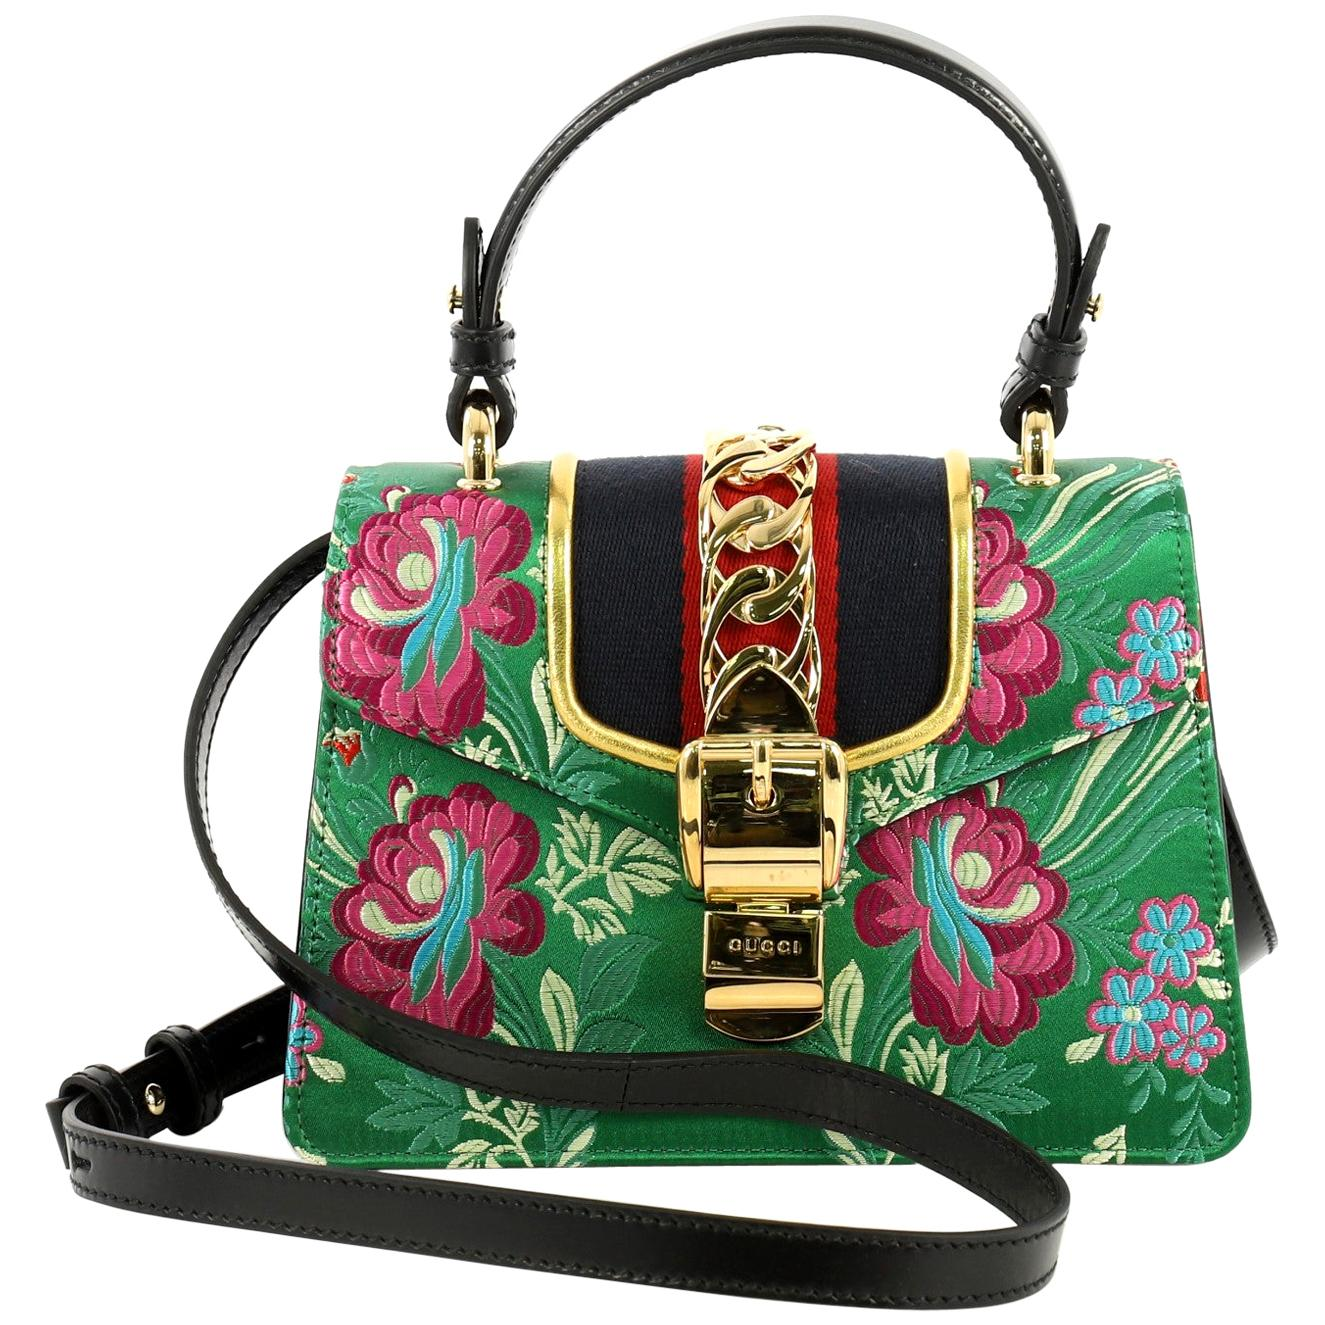 20793782b Vintage Gucci: Clothing, Bags & More - 4,117 For Sale at 1stdibs